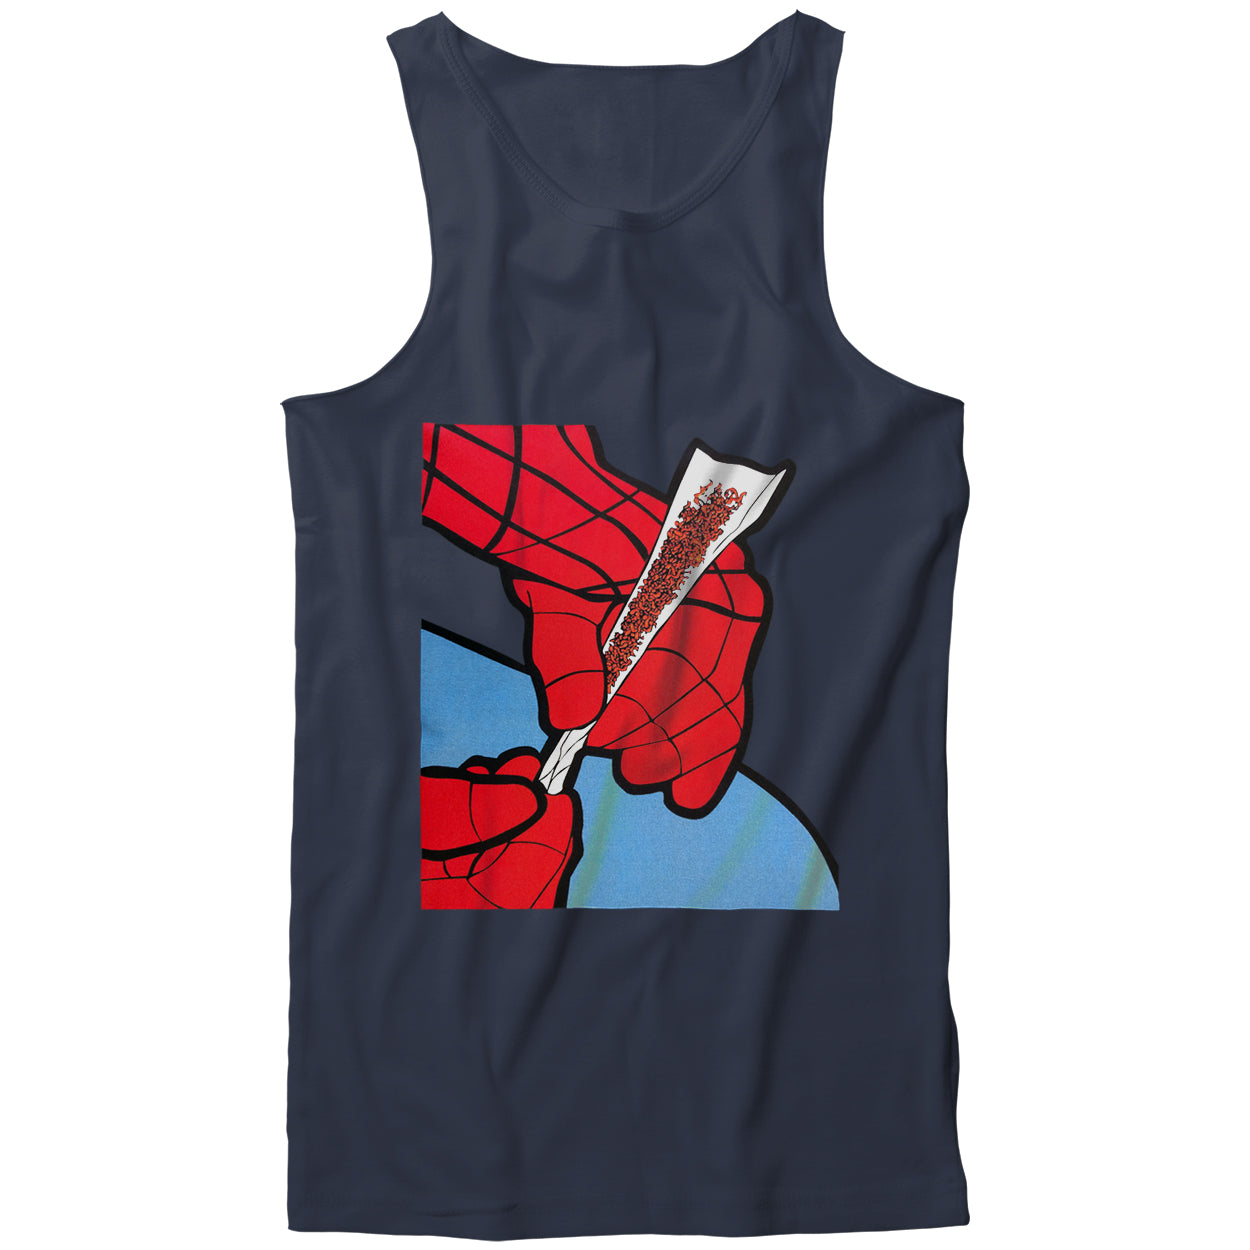 Cartoon Spider Hands Rolling Up Tank Top